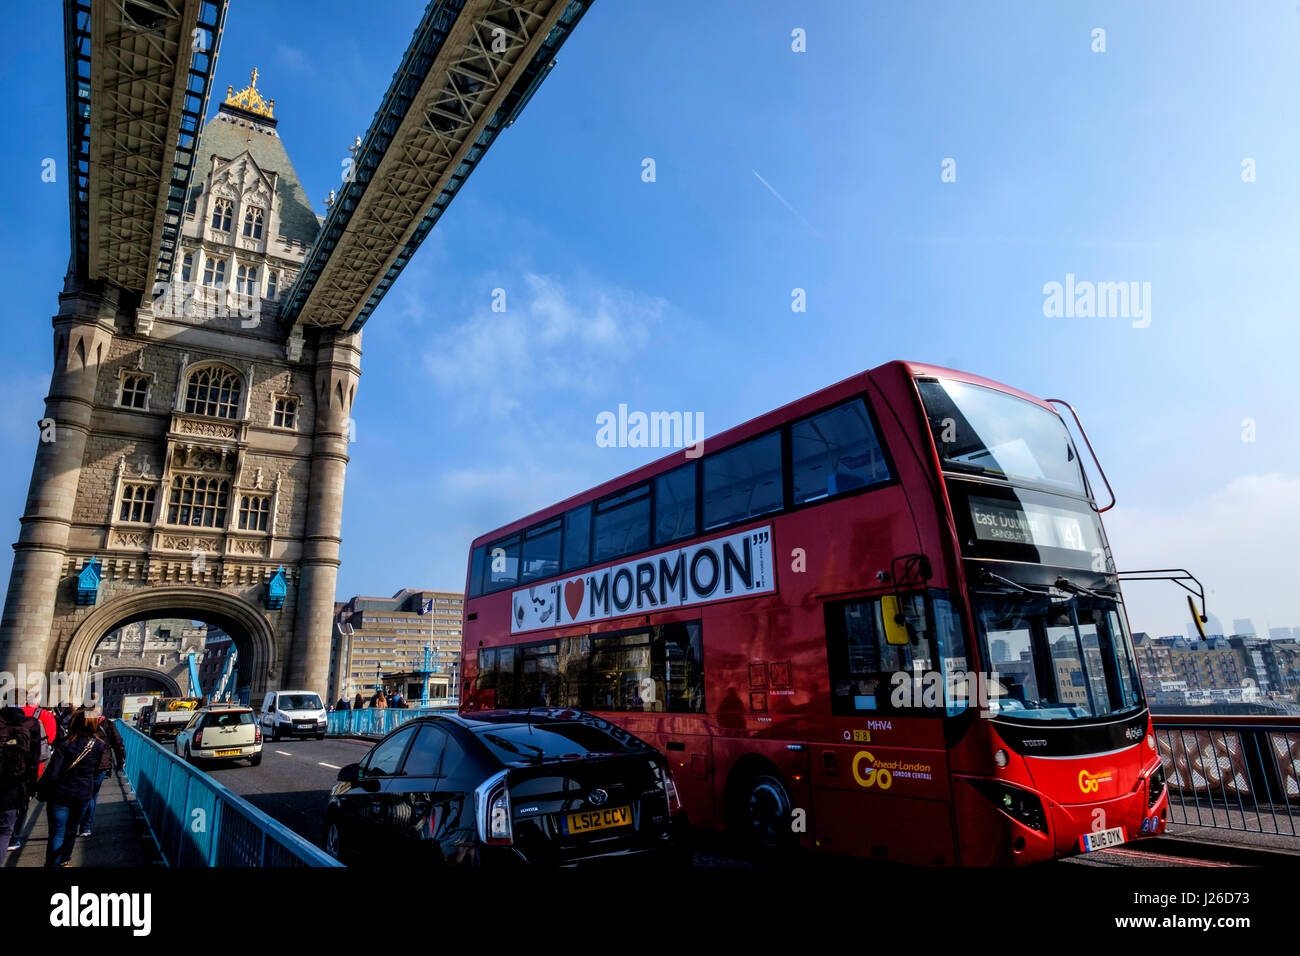 Tower Bridge, London, England, United Kingdom, Europe - Stock Image